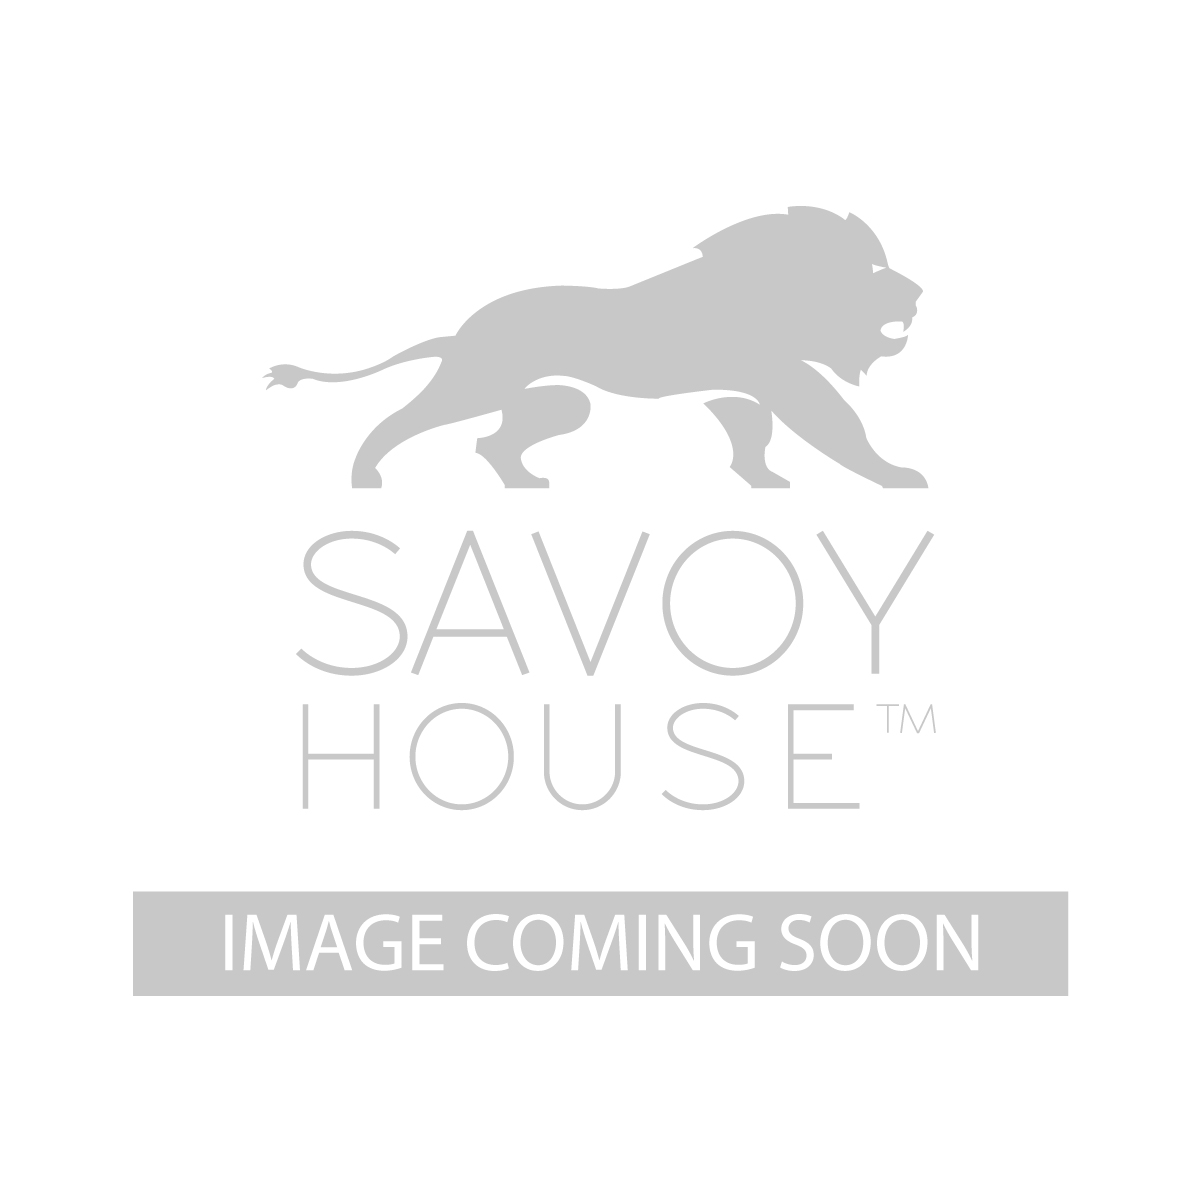 9 9131cp 1 Sn Drake 1 Light Adjustable Sconce By Savoy House